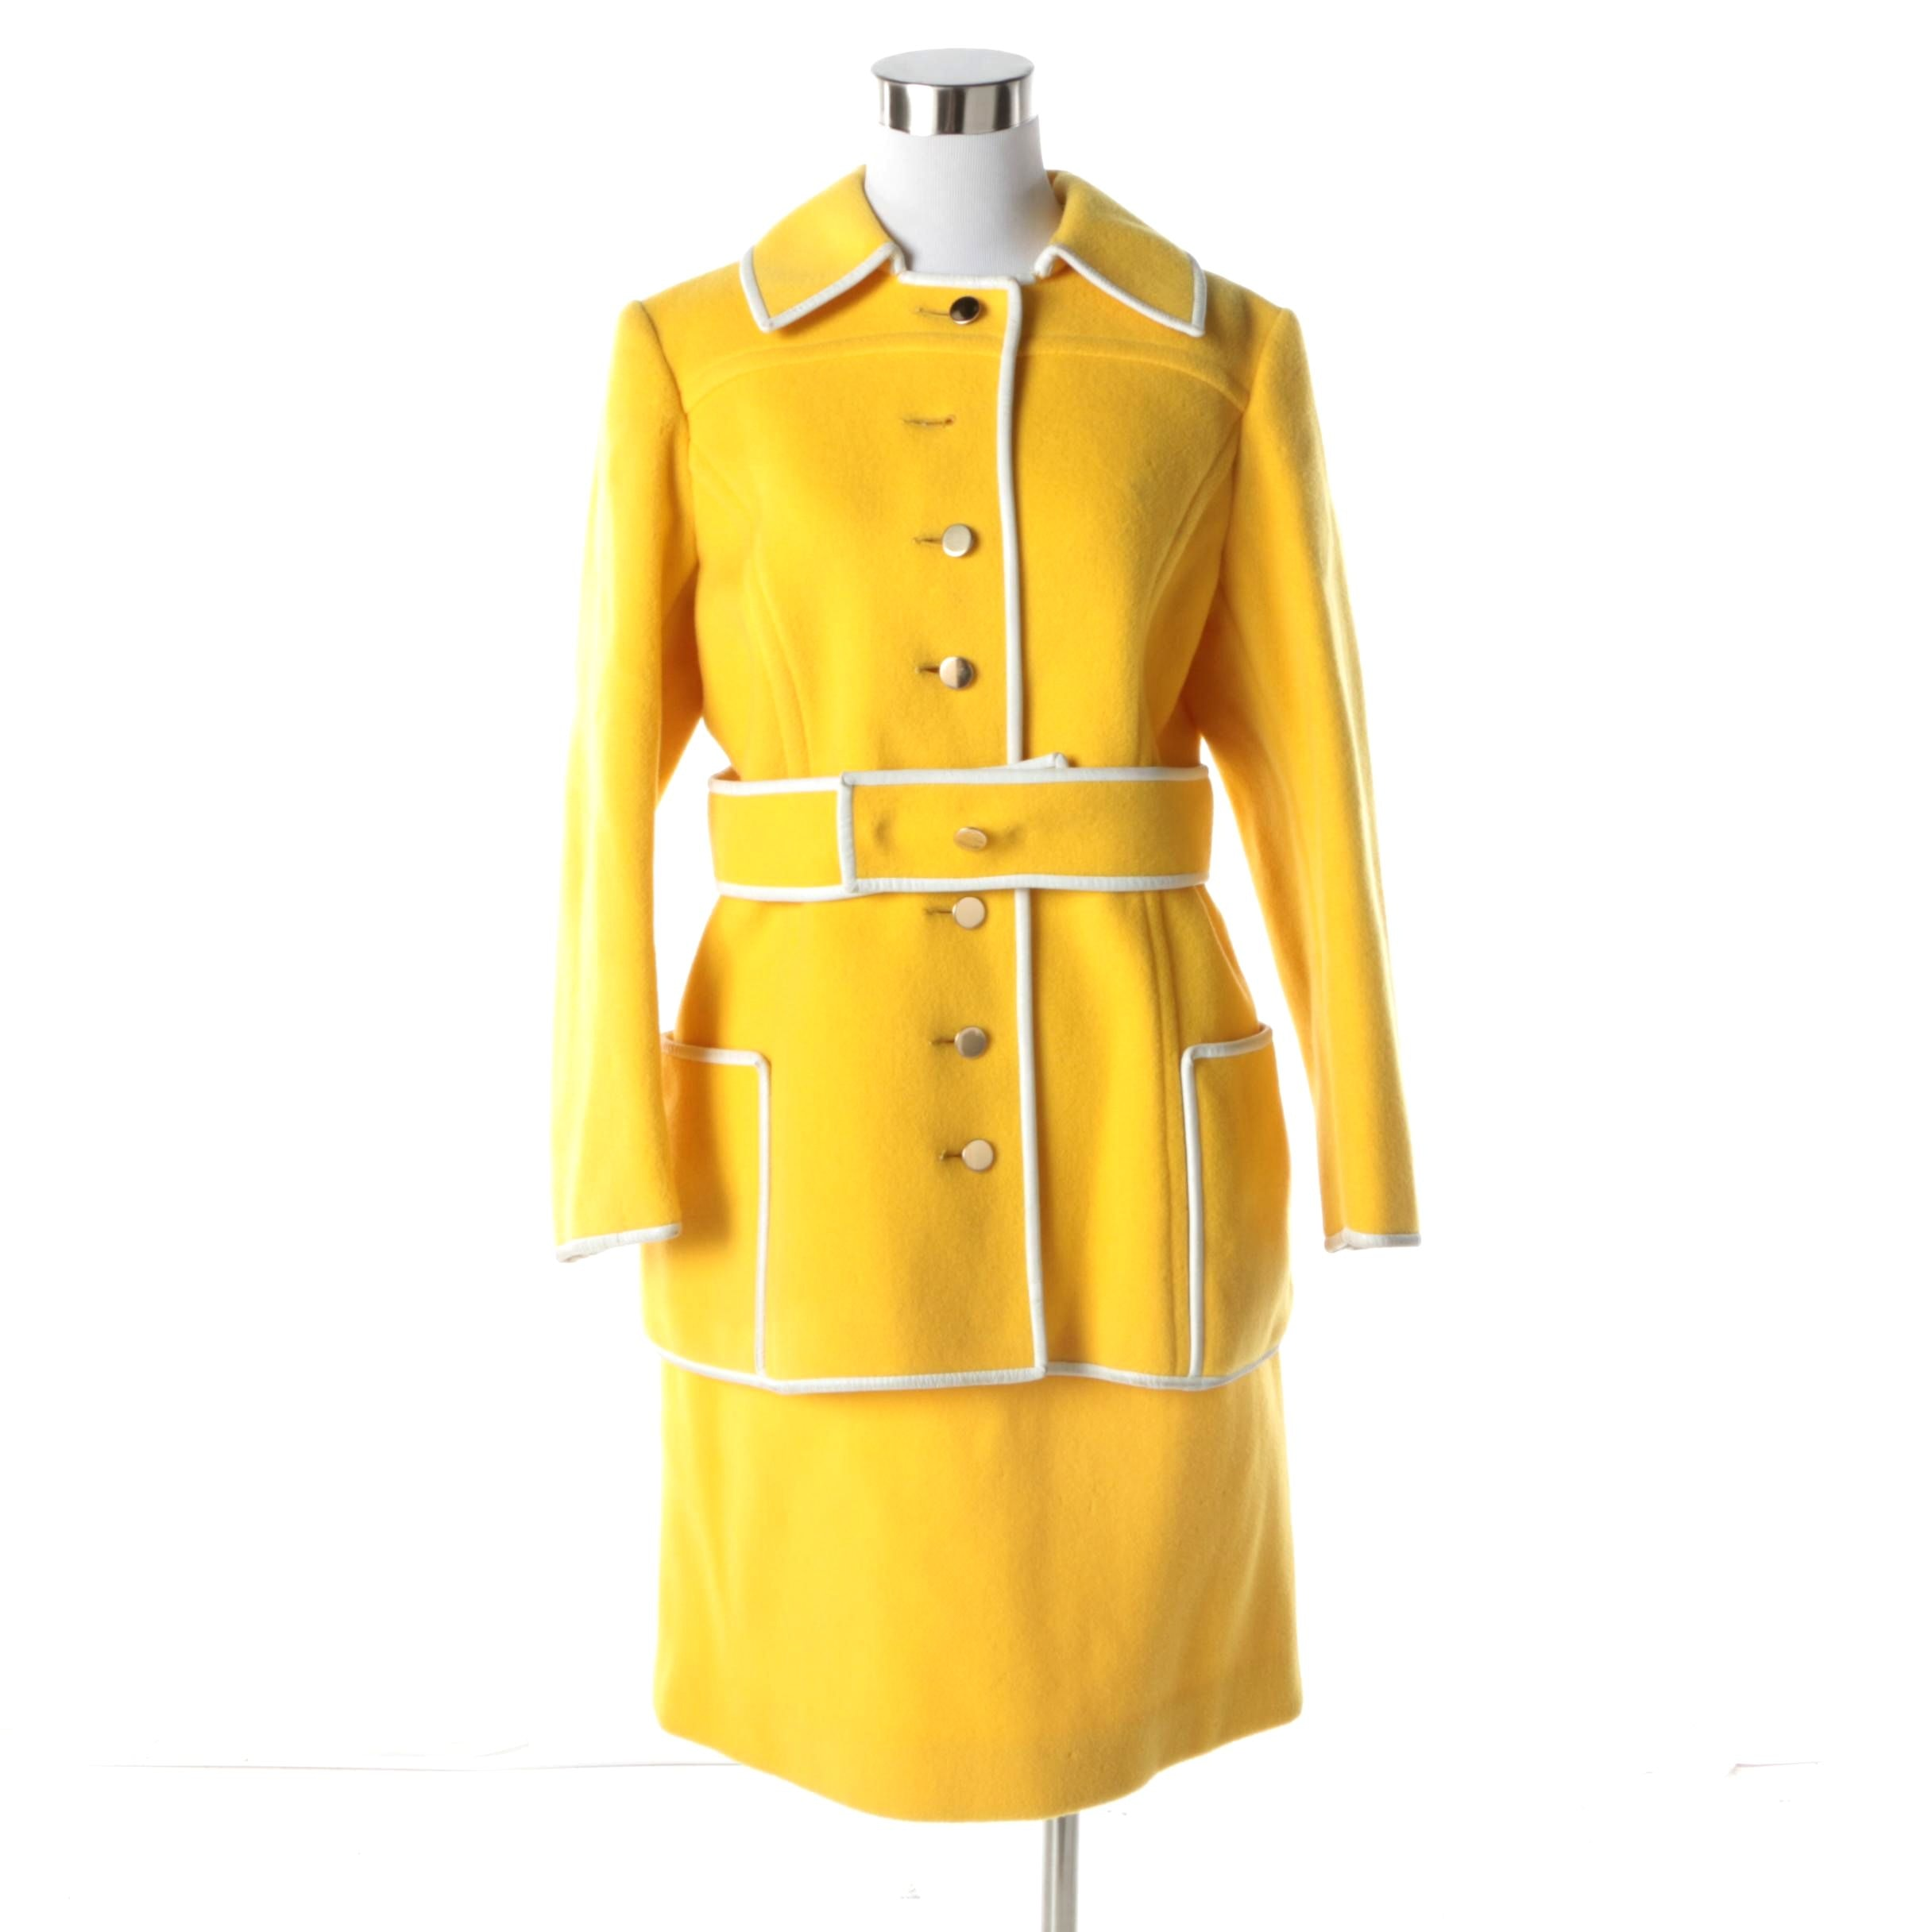 Women's Vintage Yellow Wool Blend Skirt Suit with White Leather Trim